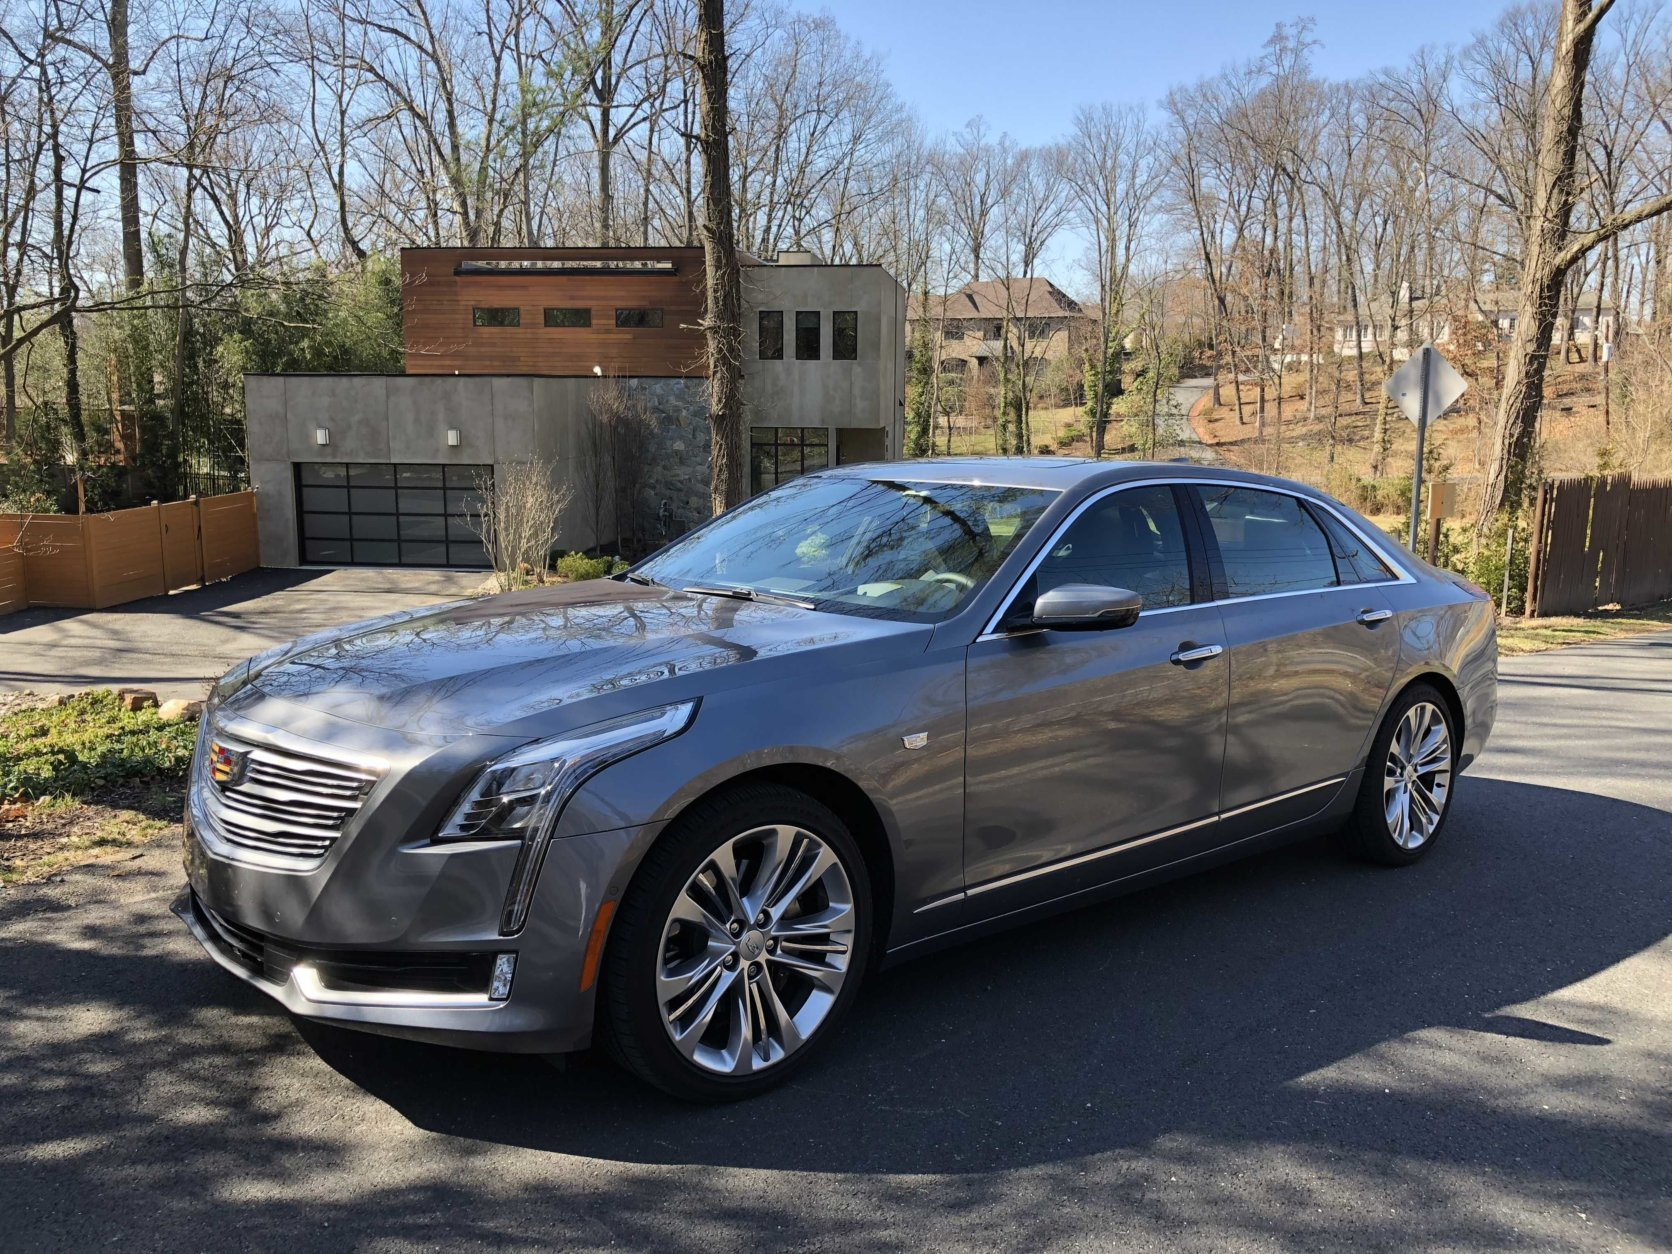 Car Review: Cadillac CT6 Platinum is luxury tech with bang